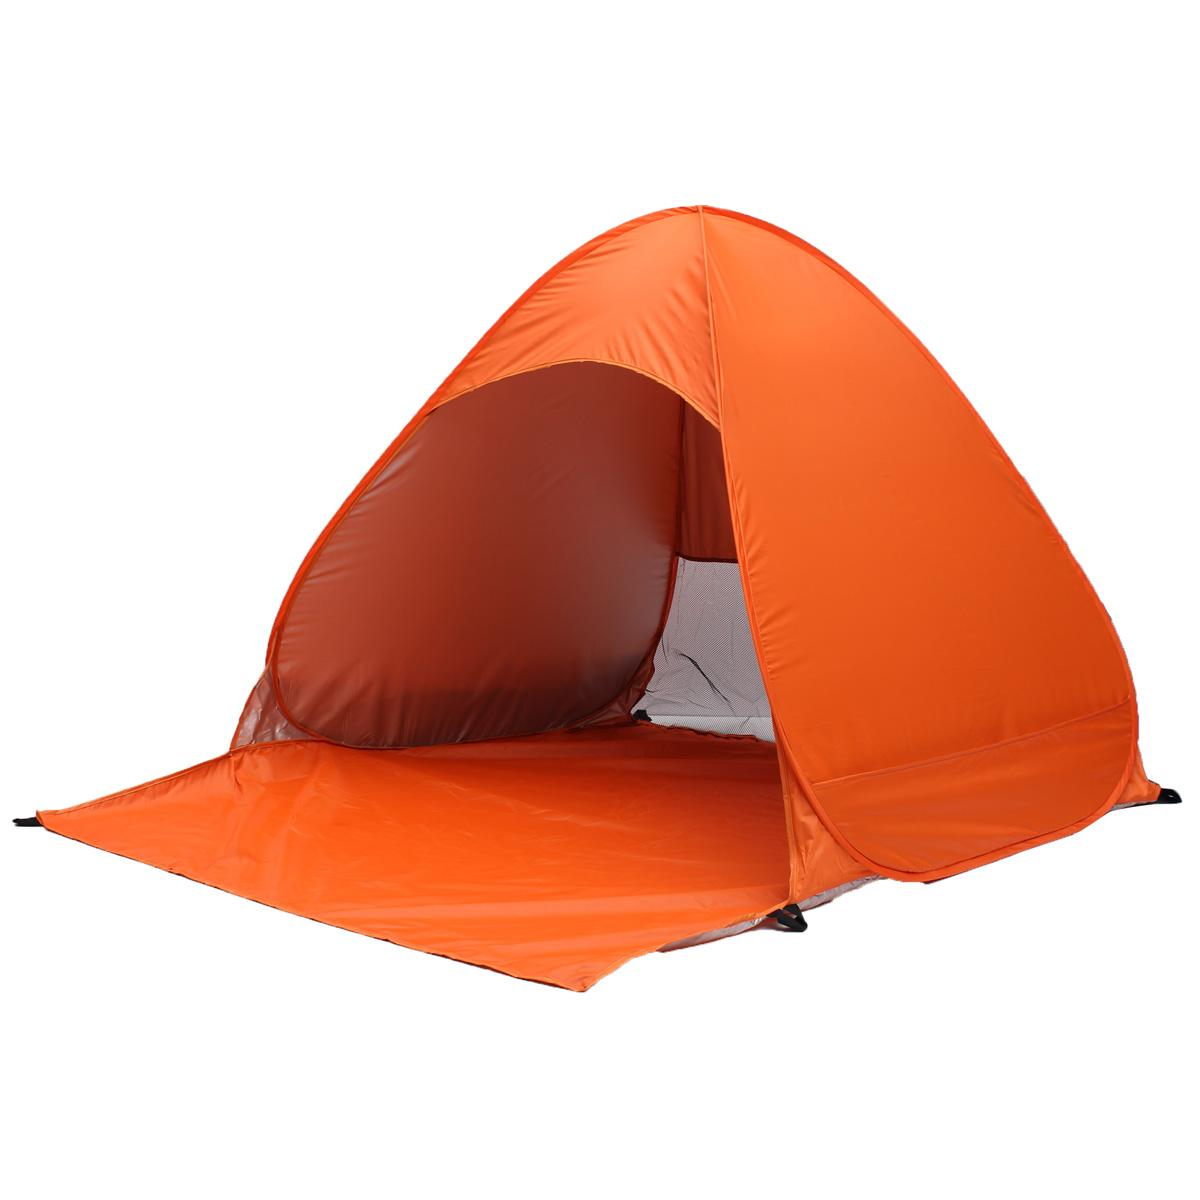 Outdoor Waterproof Ultralight Polyester Fabrics 2 3 Person Uv Protection Tent Travel C&ing Hiking Automatic Beach Fishing Tent Vango Tents Family Tent ...  sc 1 st  DHgate.com & Outdoor Waterproof Ultralight Polyester Fabrics 2 3 Person Uv ...